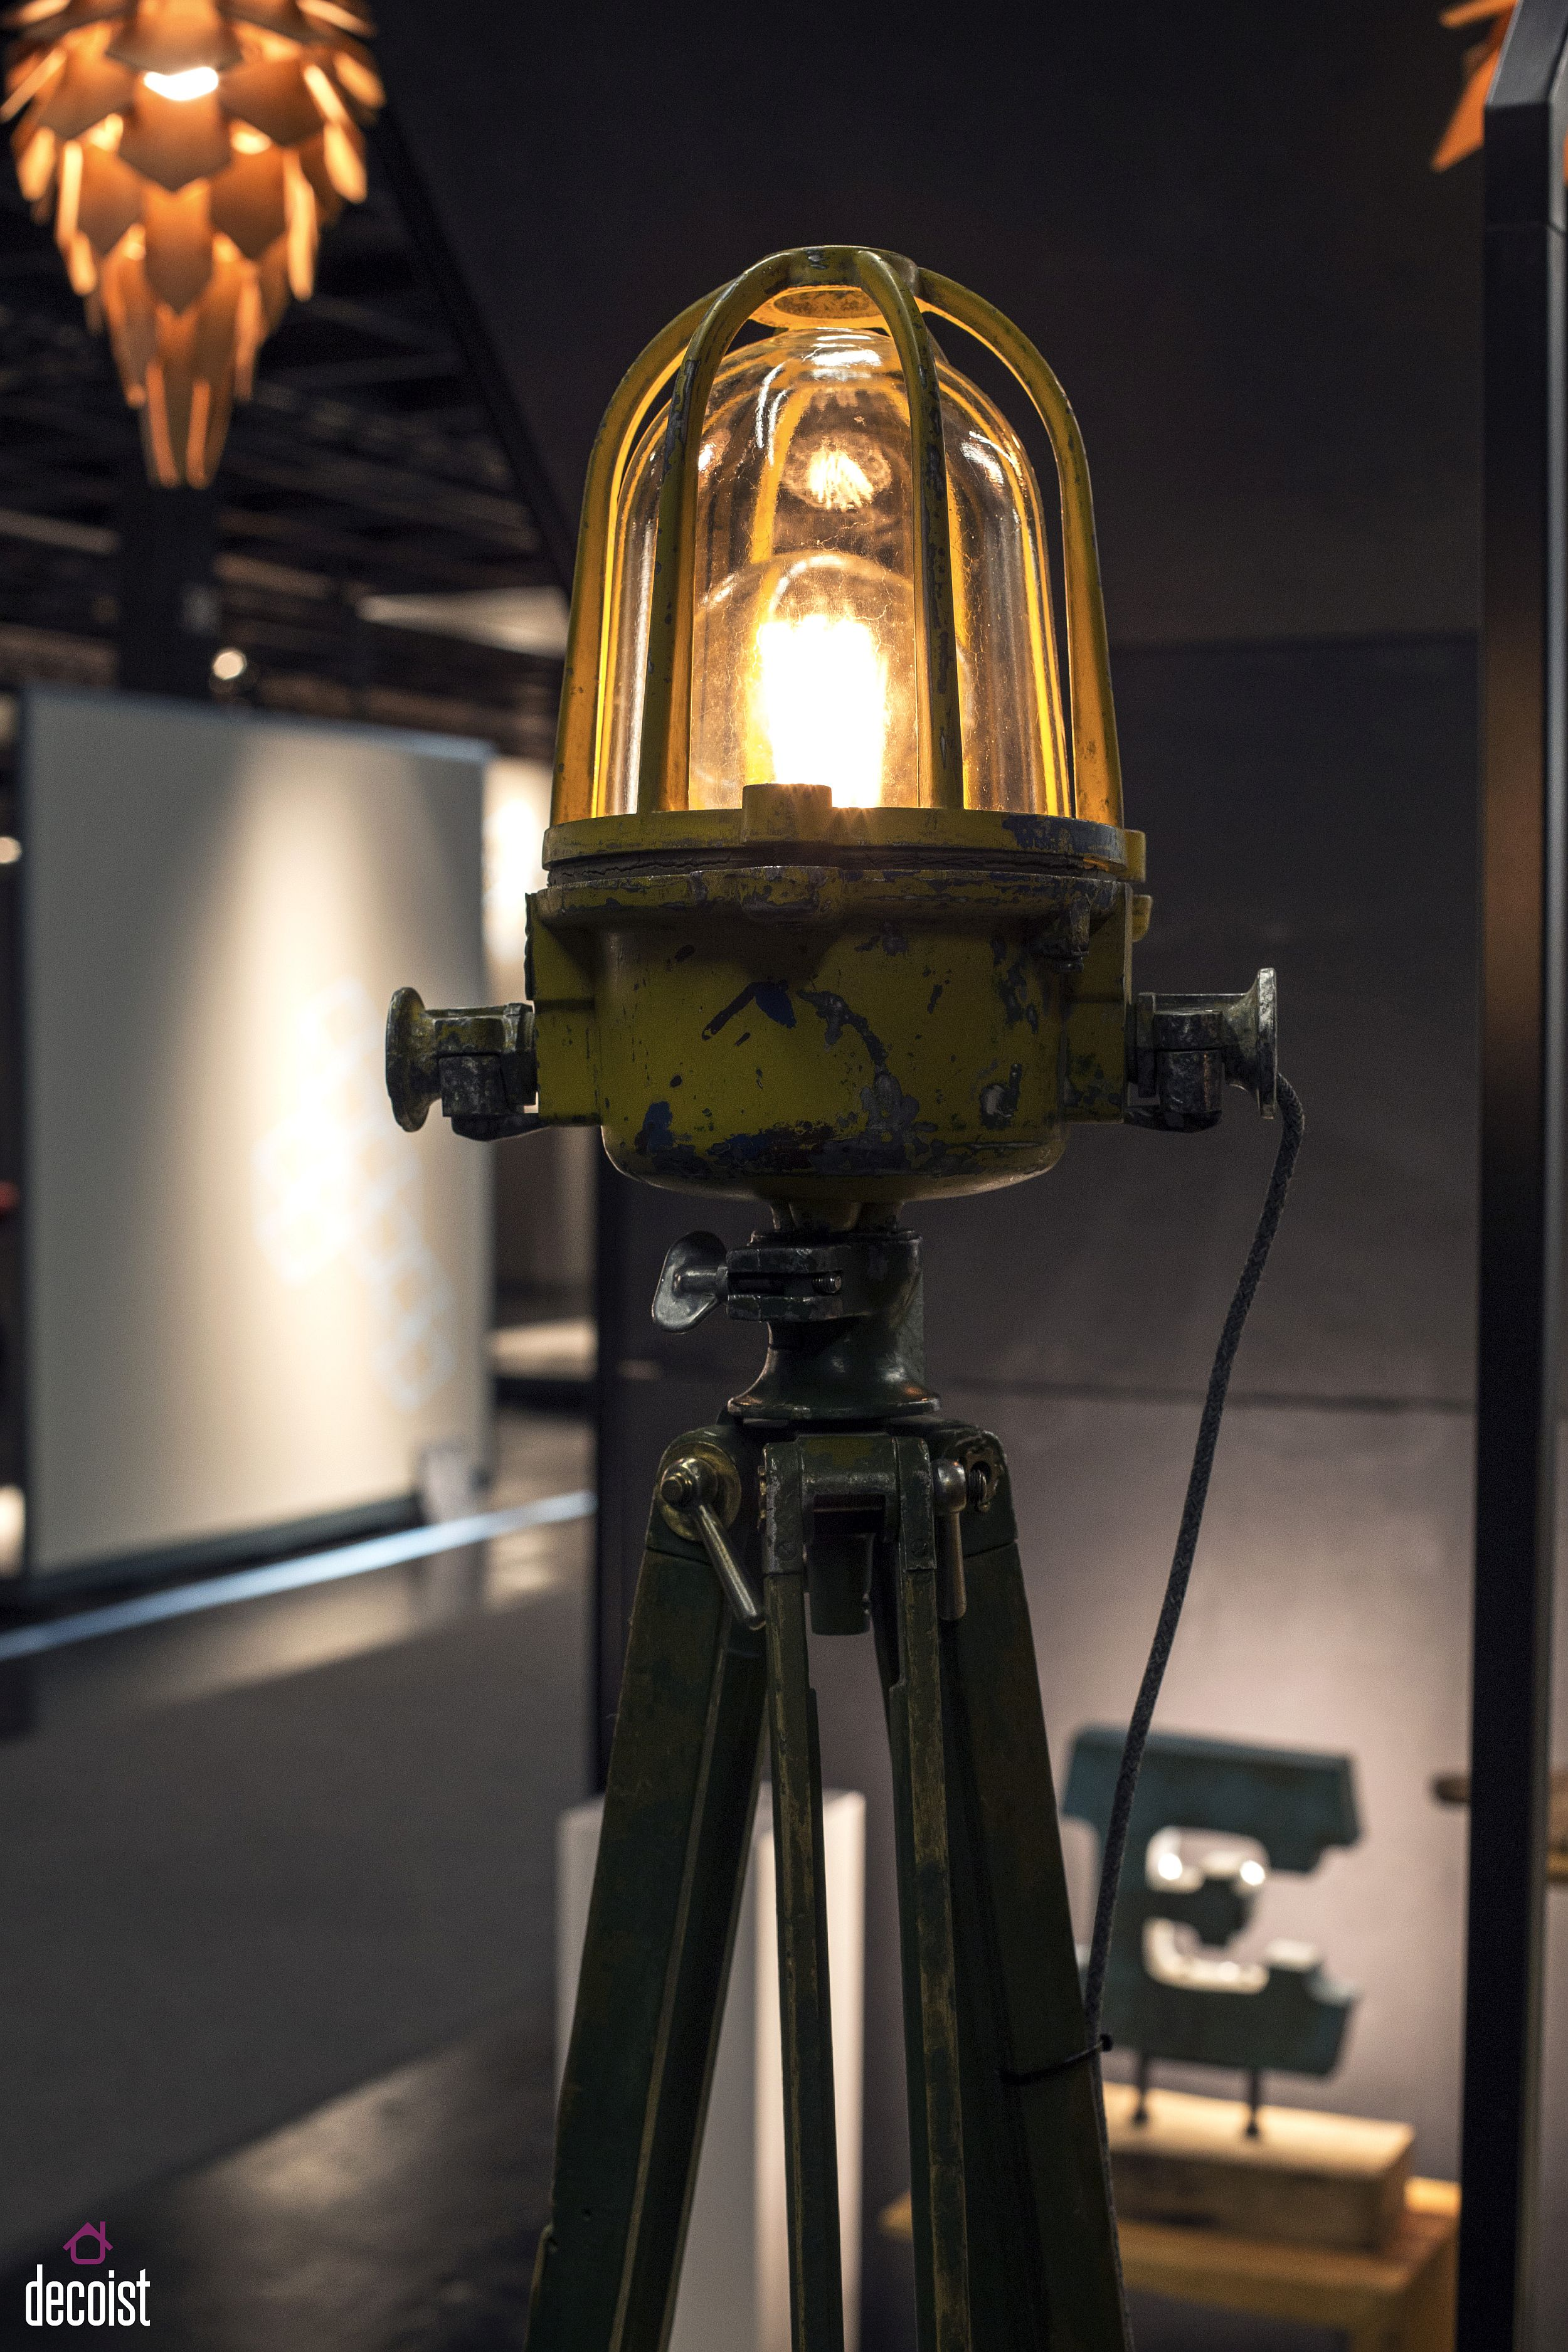 Industrial floor lamp from dizainar also serves as an interesting piece of artwork!